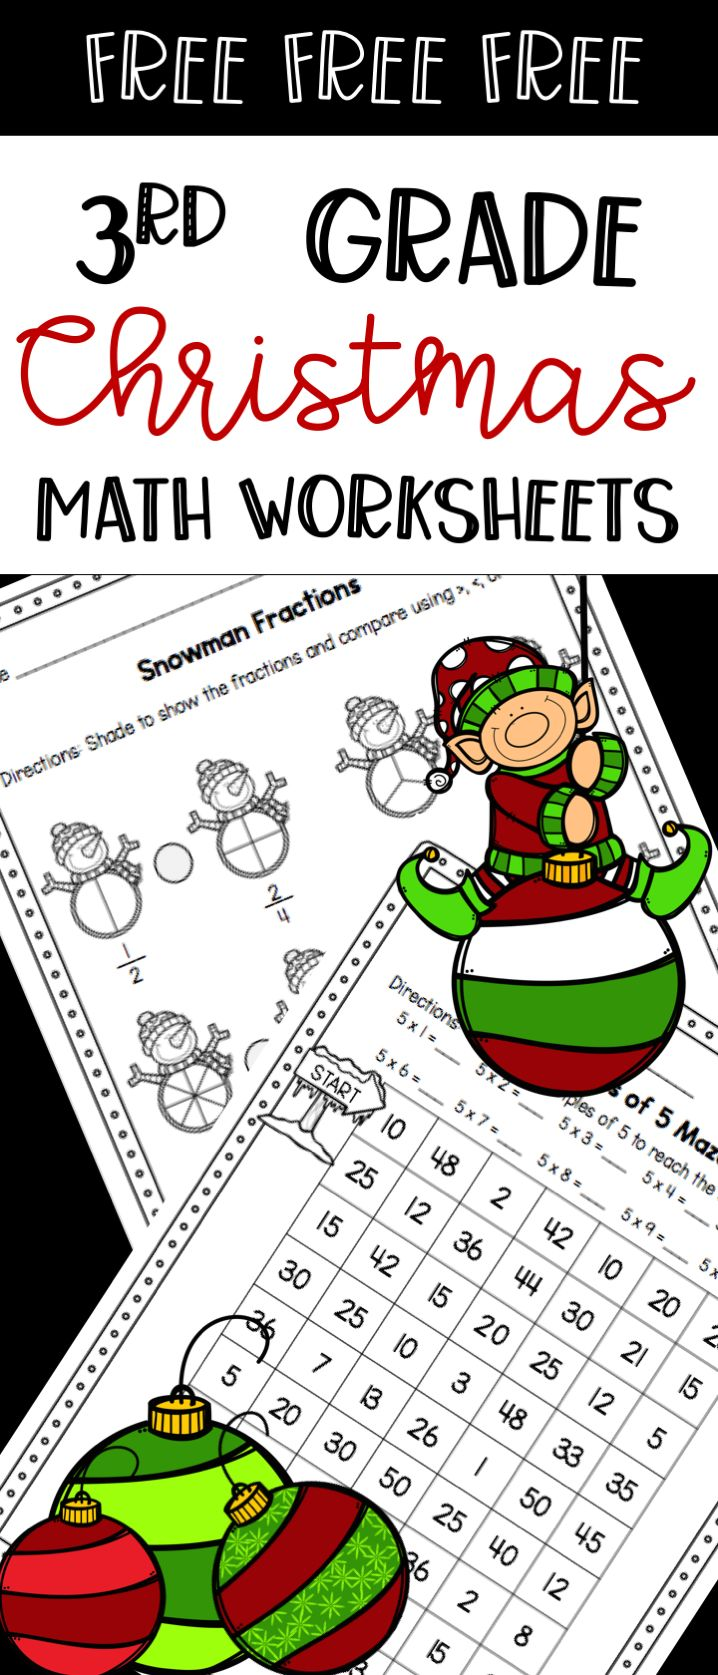 Workbooks math blaster worksheets : Best 25+ 3rd grade math worksheets ideas on Pinterest | Math ...